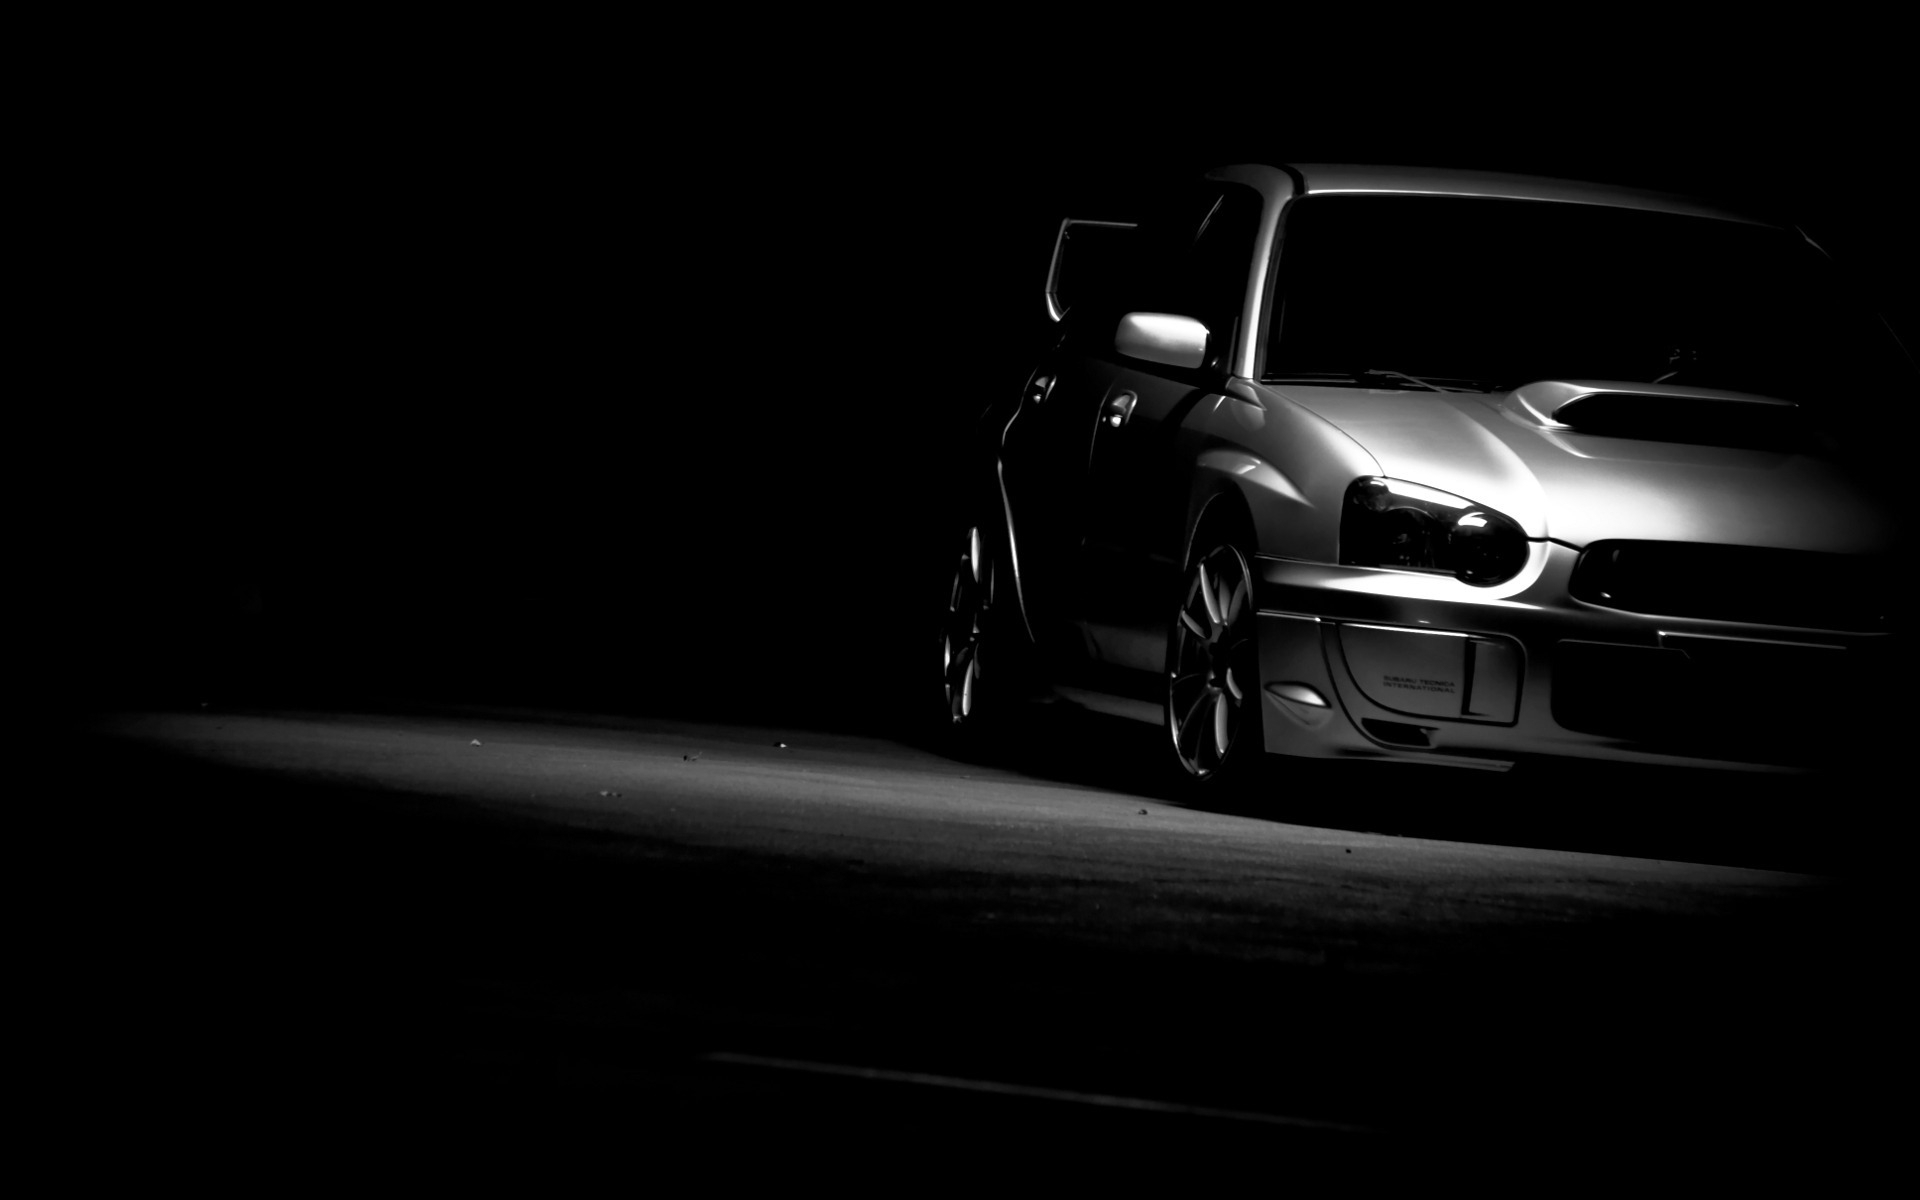 45170 download wallpaper Transport, Auto, Subaru screensavers and pictures for free